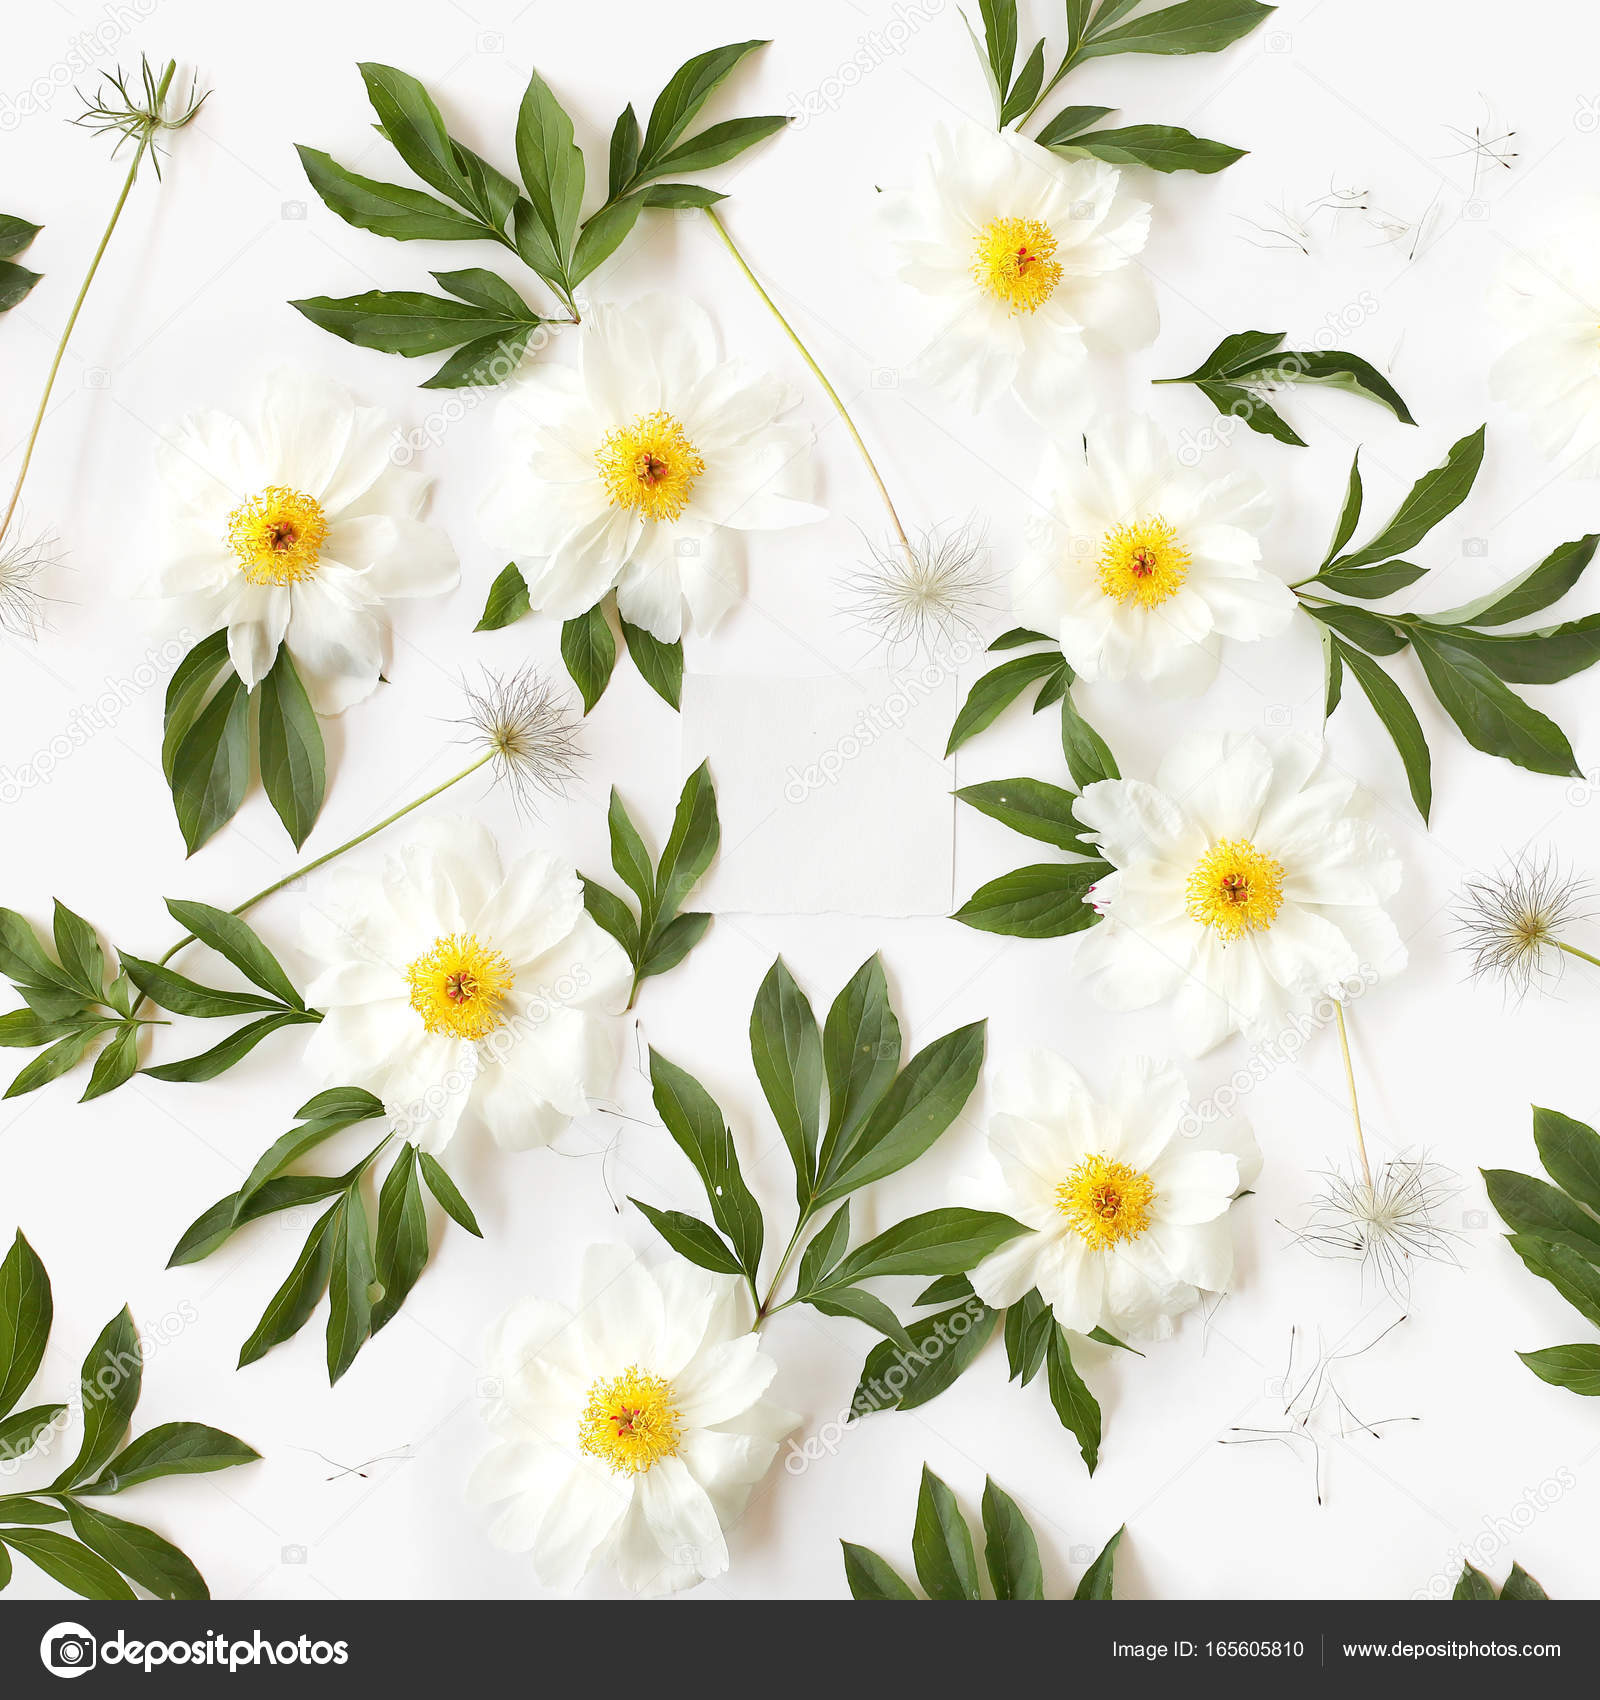 Empty Paper In The Middle Of Floral Pattern Made Of White Peony